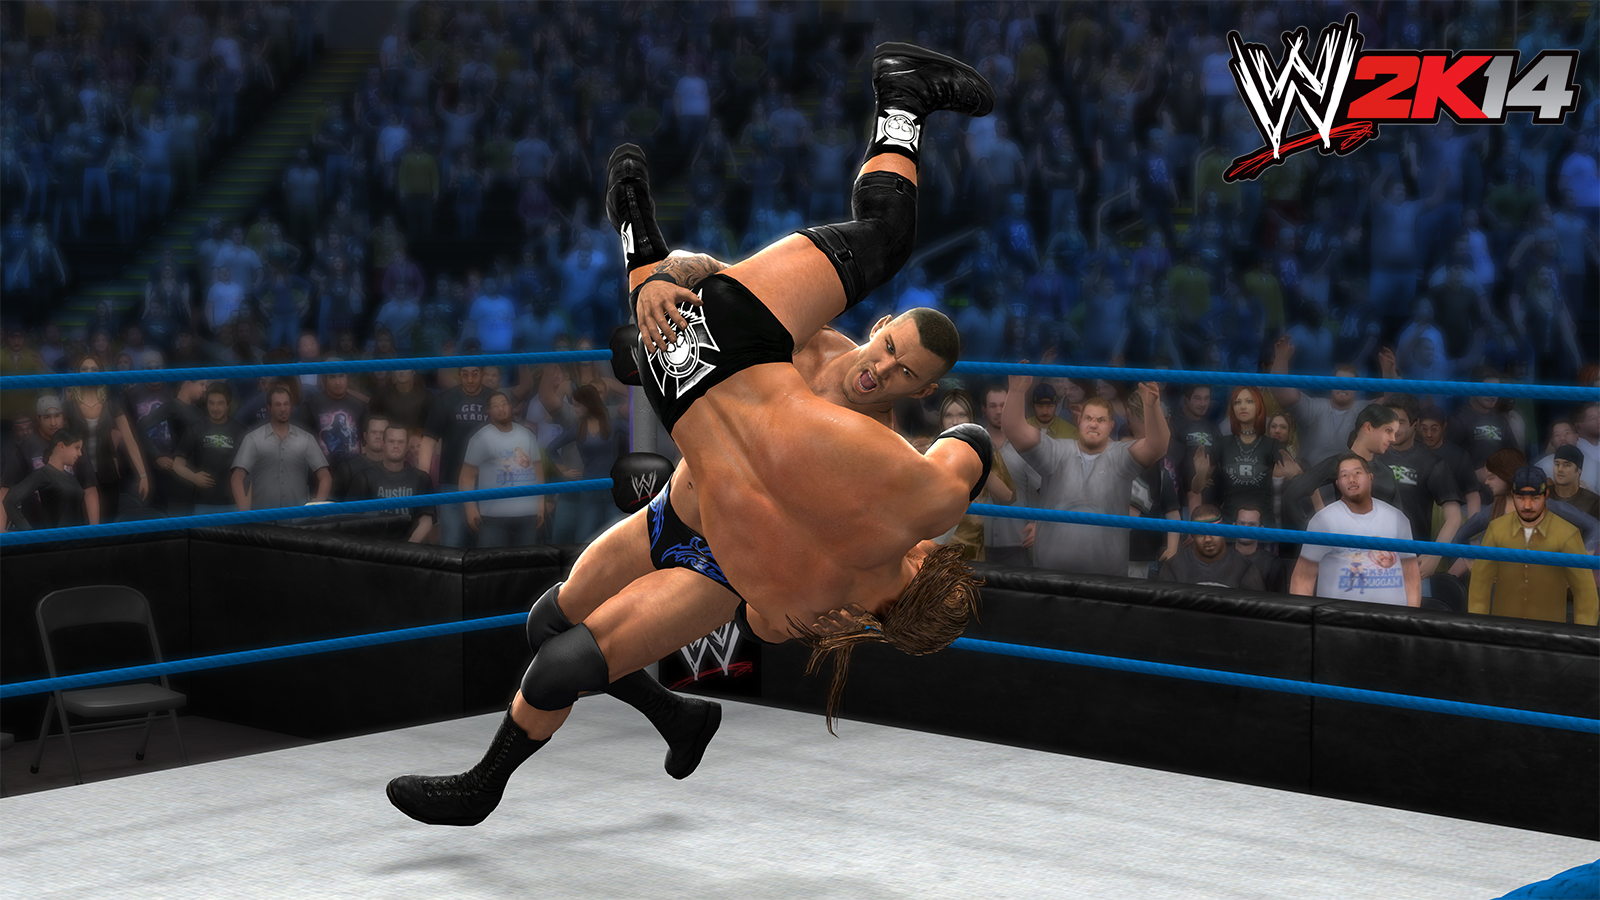 Randy Orton Rko John Cena Off Building